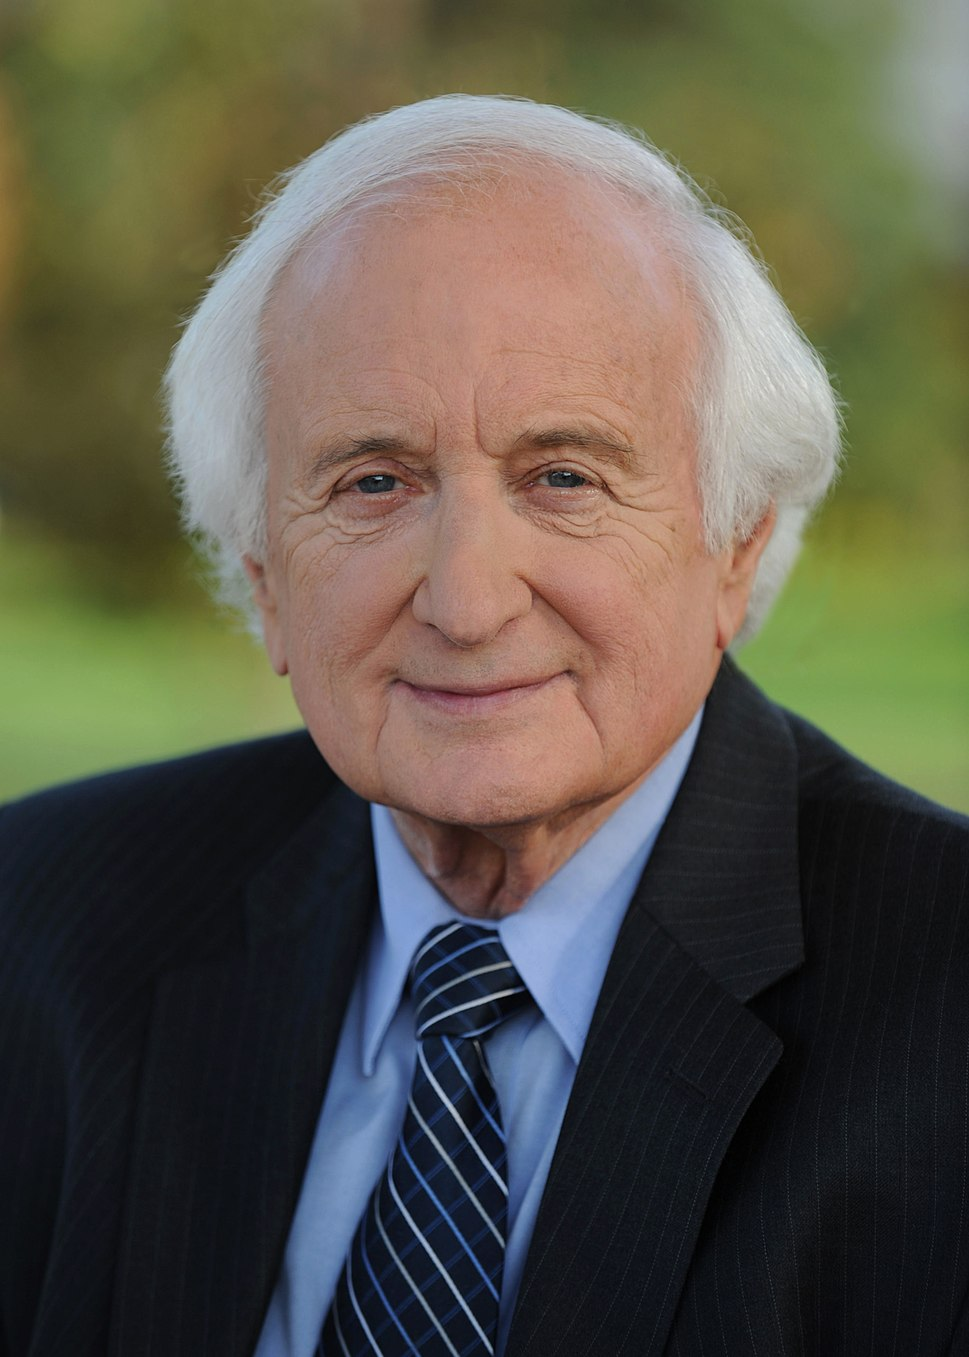 Sander Levin, Official Portrait.JPG